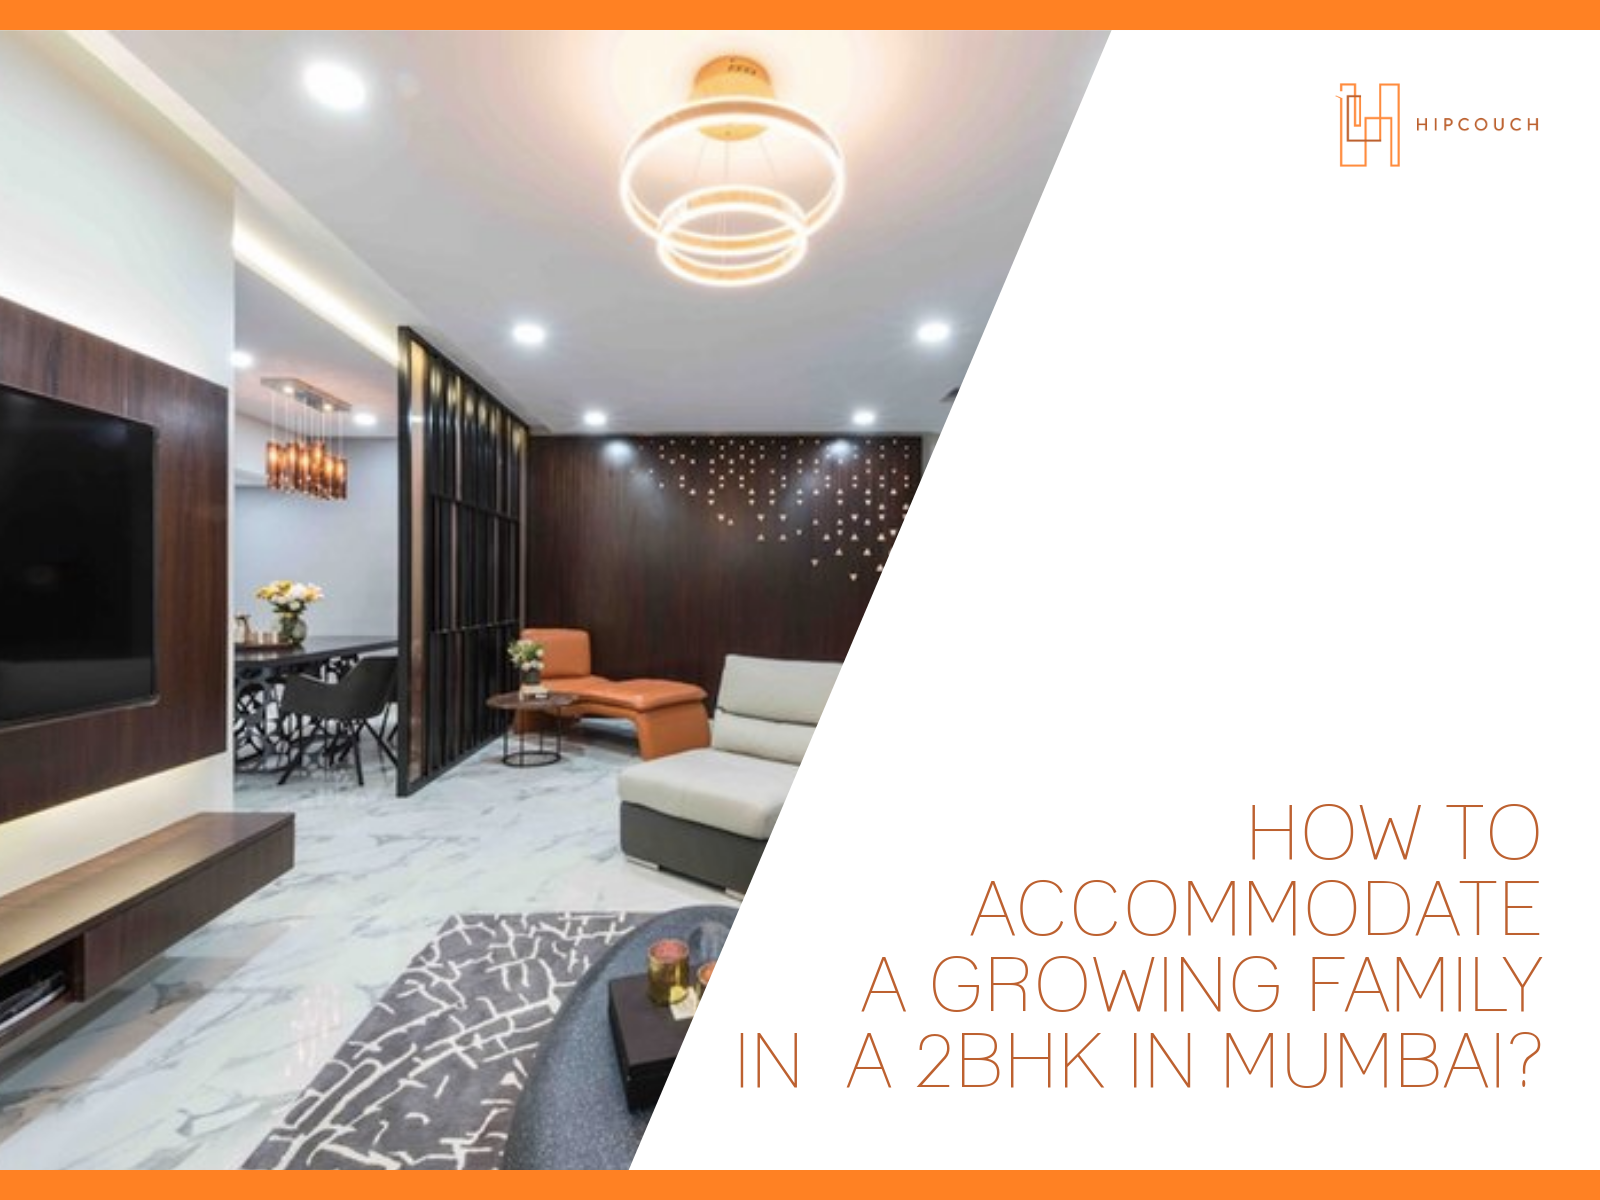 How To Accommodate A Growing Family In A 2BHK In Mumbai?